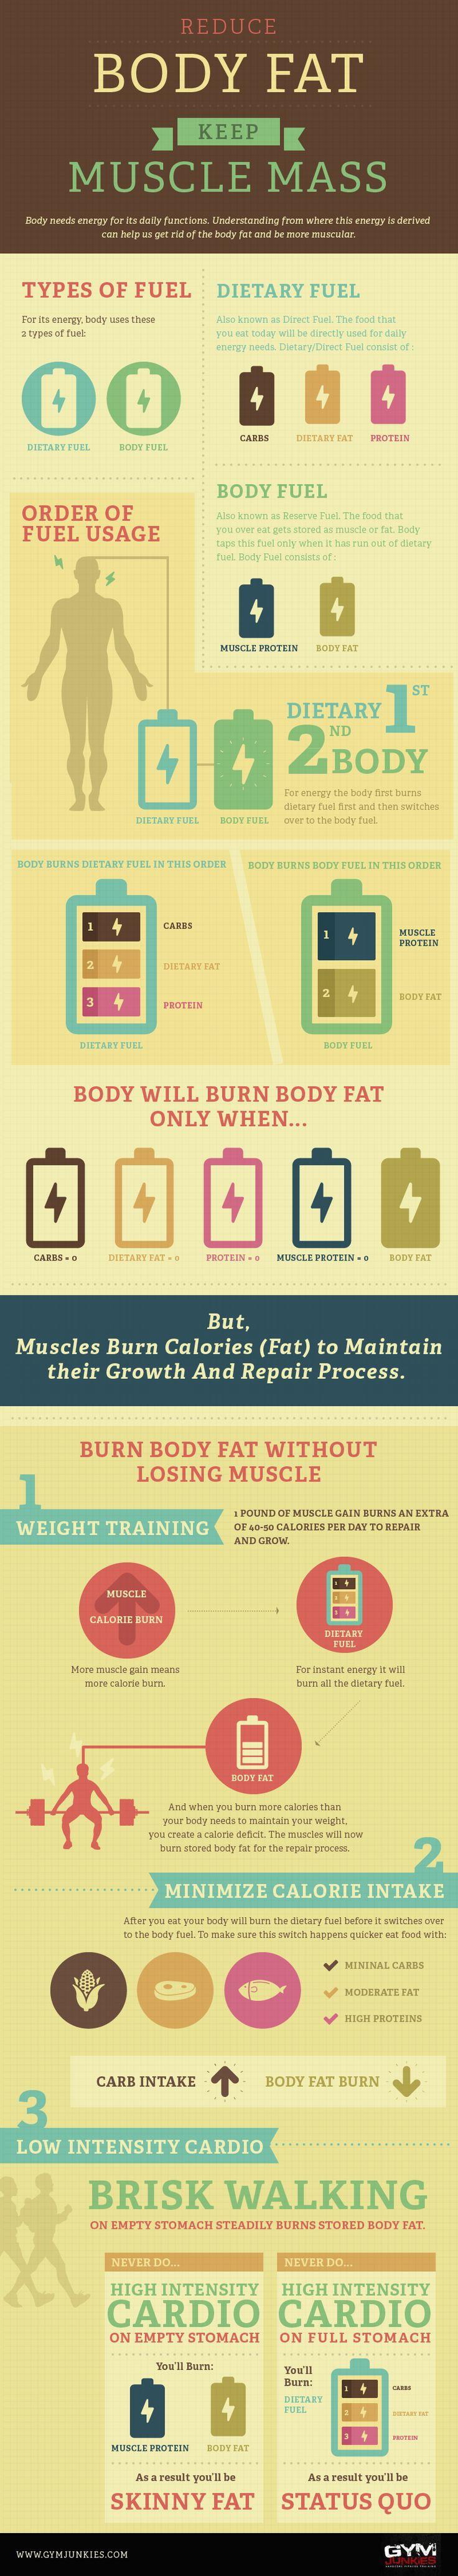 Reduce Your Body Fat Keep Muscle Mass #infographic